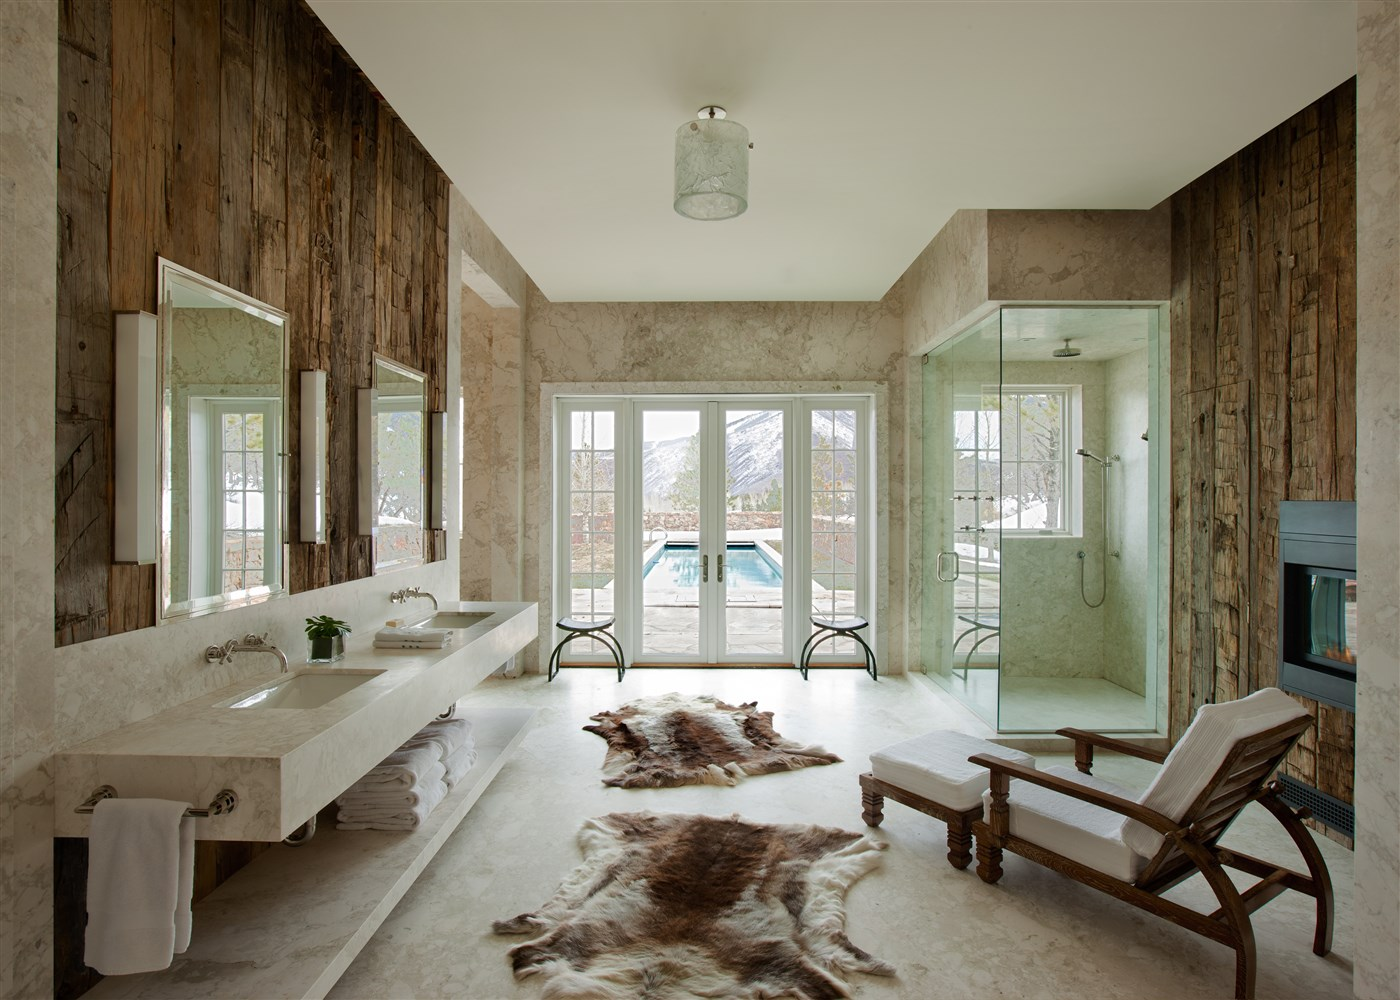 If we had a bathroom like the ones in the pictures, there would be no need for having other house ...